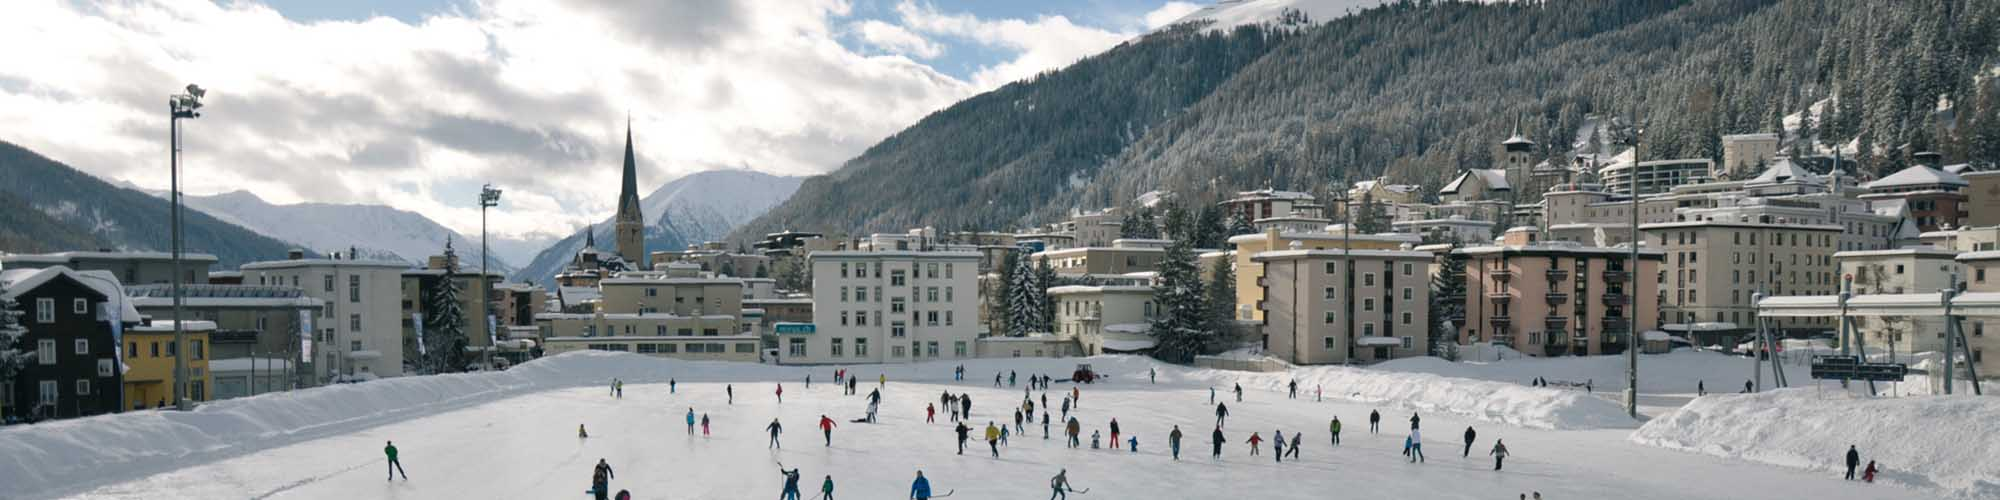 Hotel Davos - La plus grande patinoire naturelle - d'Europe